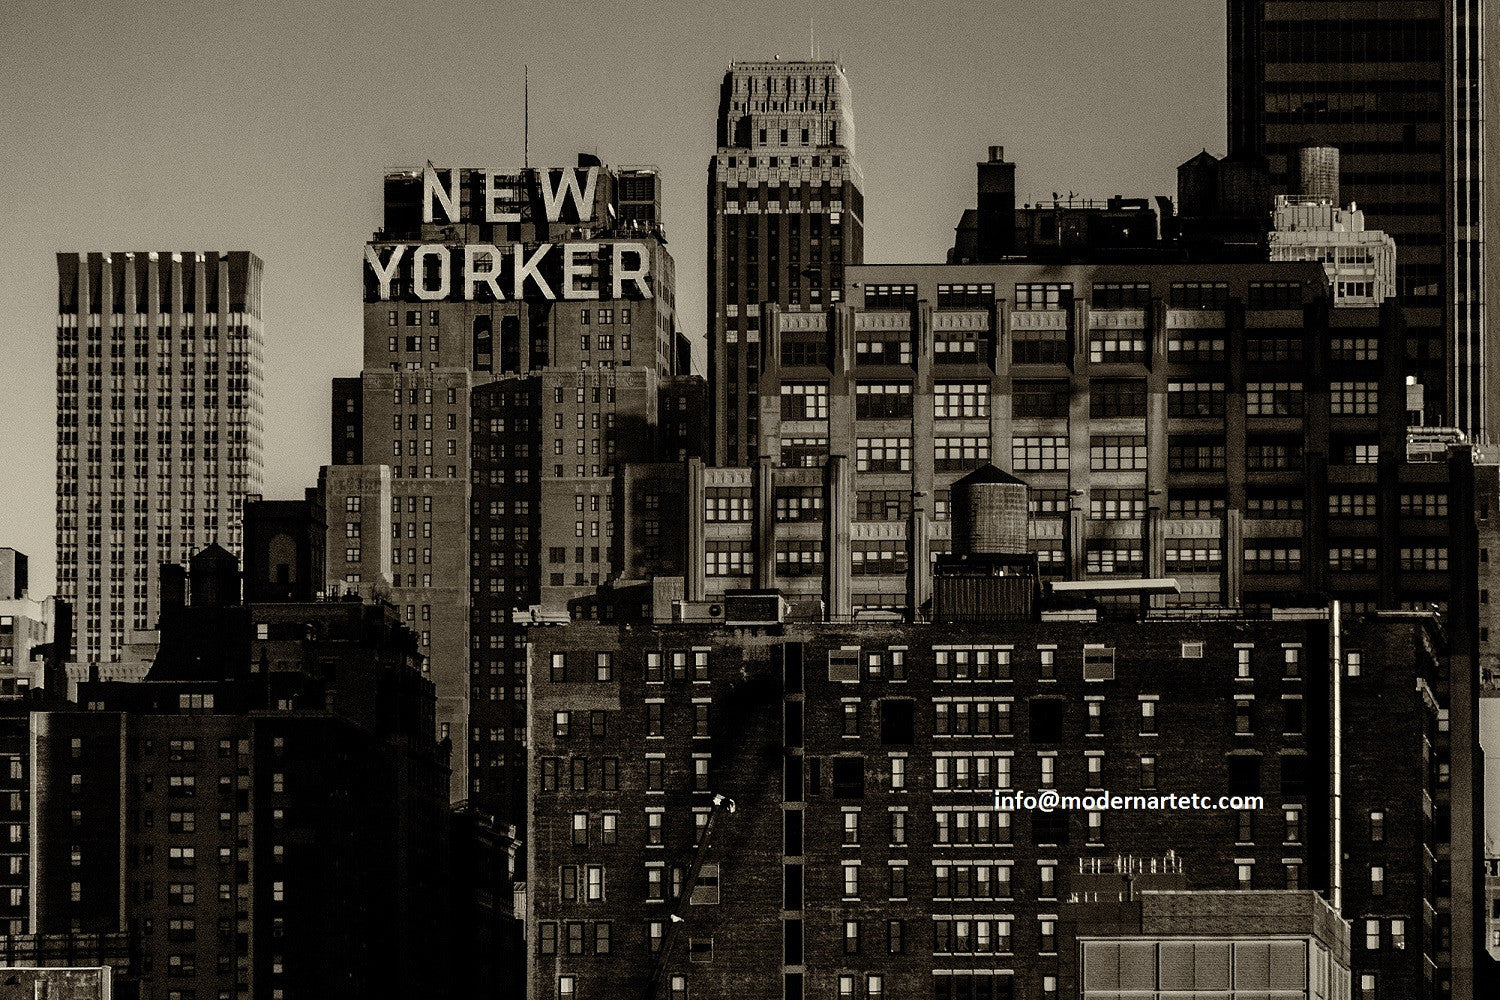 New York City photography -  New Yorker Skyline, Manhattan